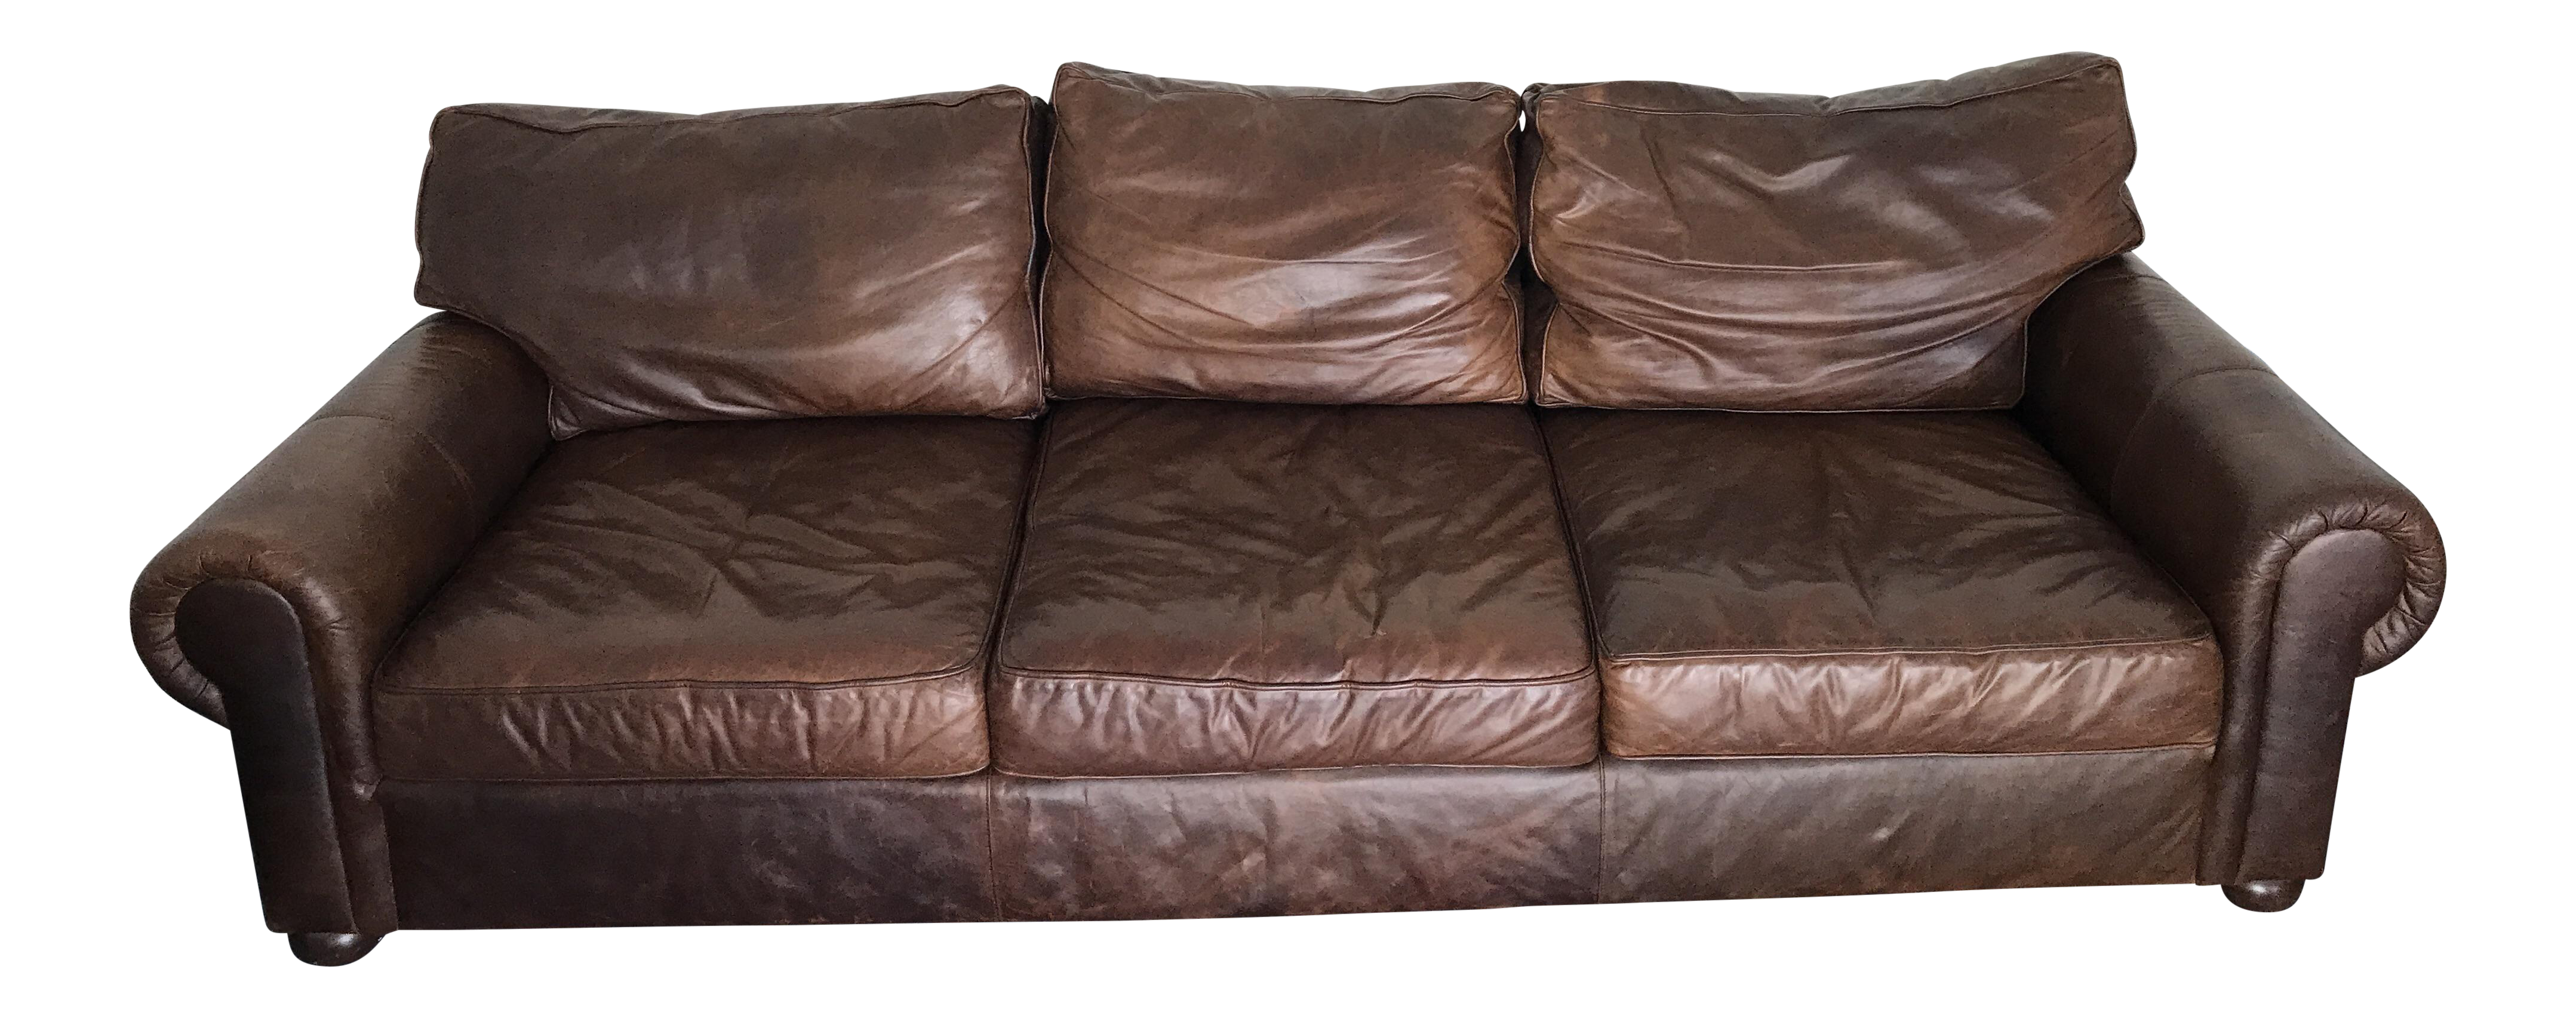 Lexington Brompton Style Italian Leather Couch Couch Sofa Furniture